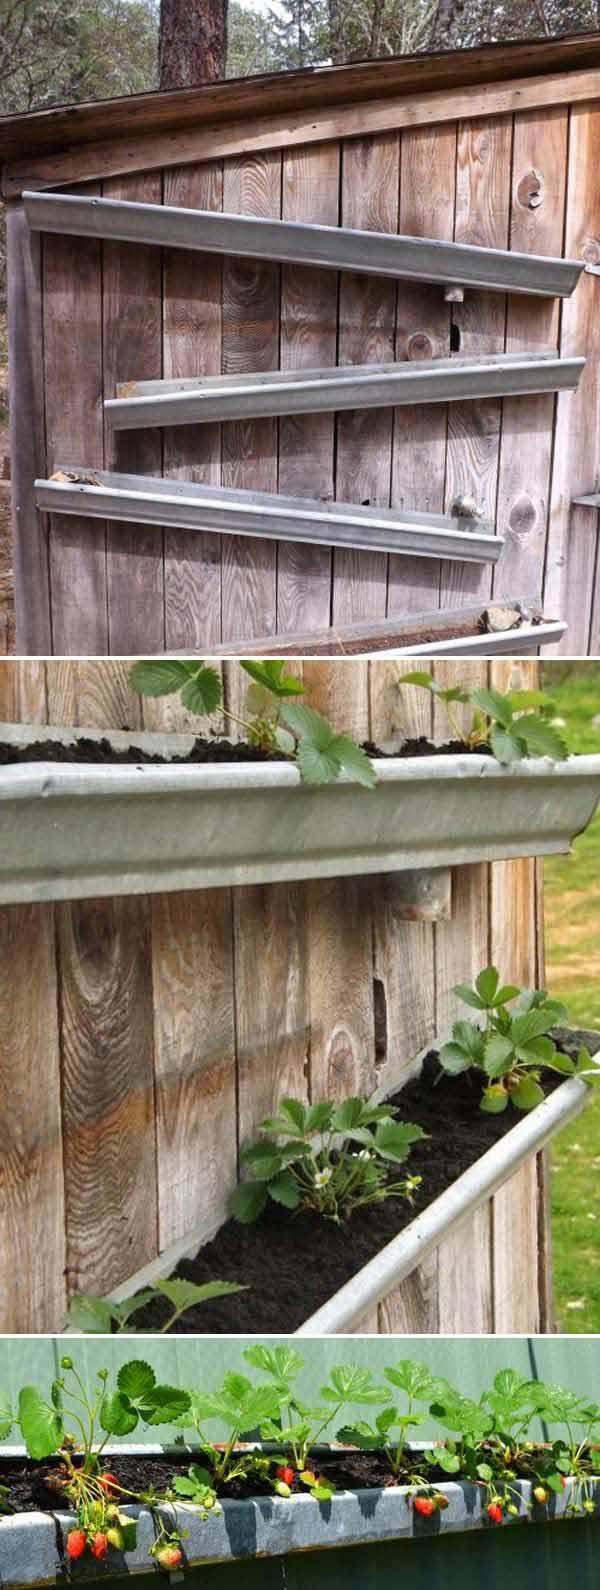 Rain gutters Strawberry Garden